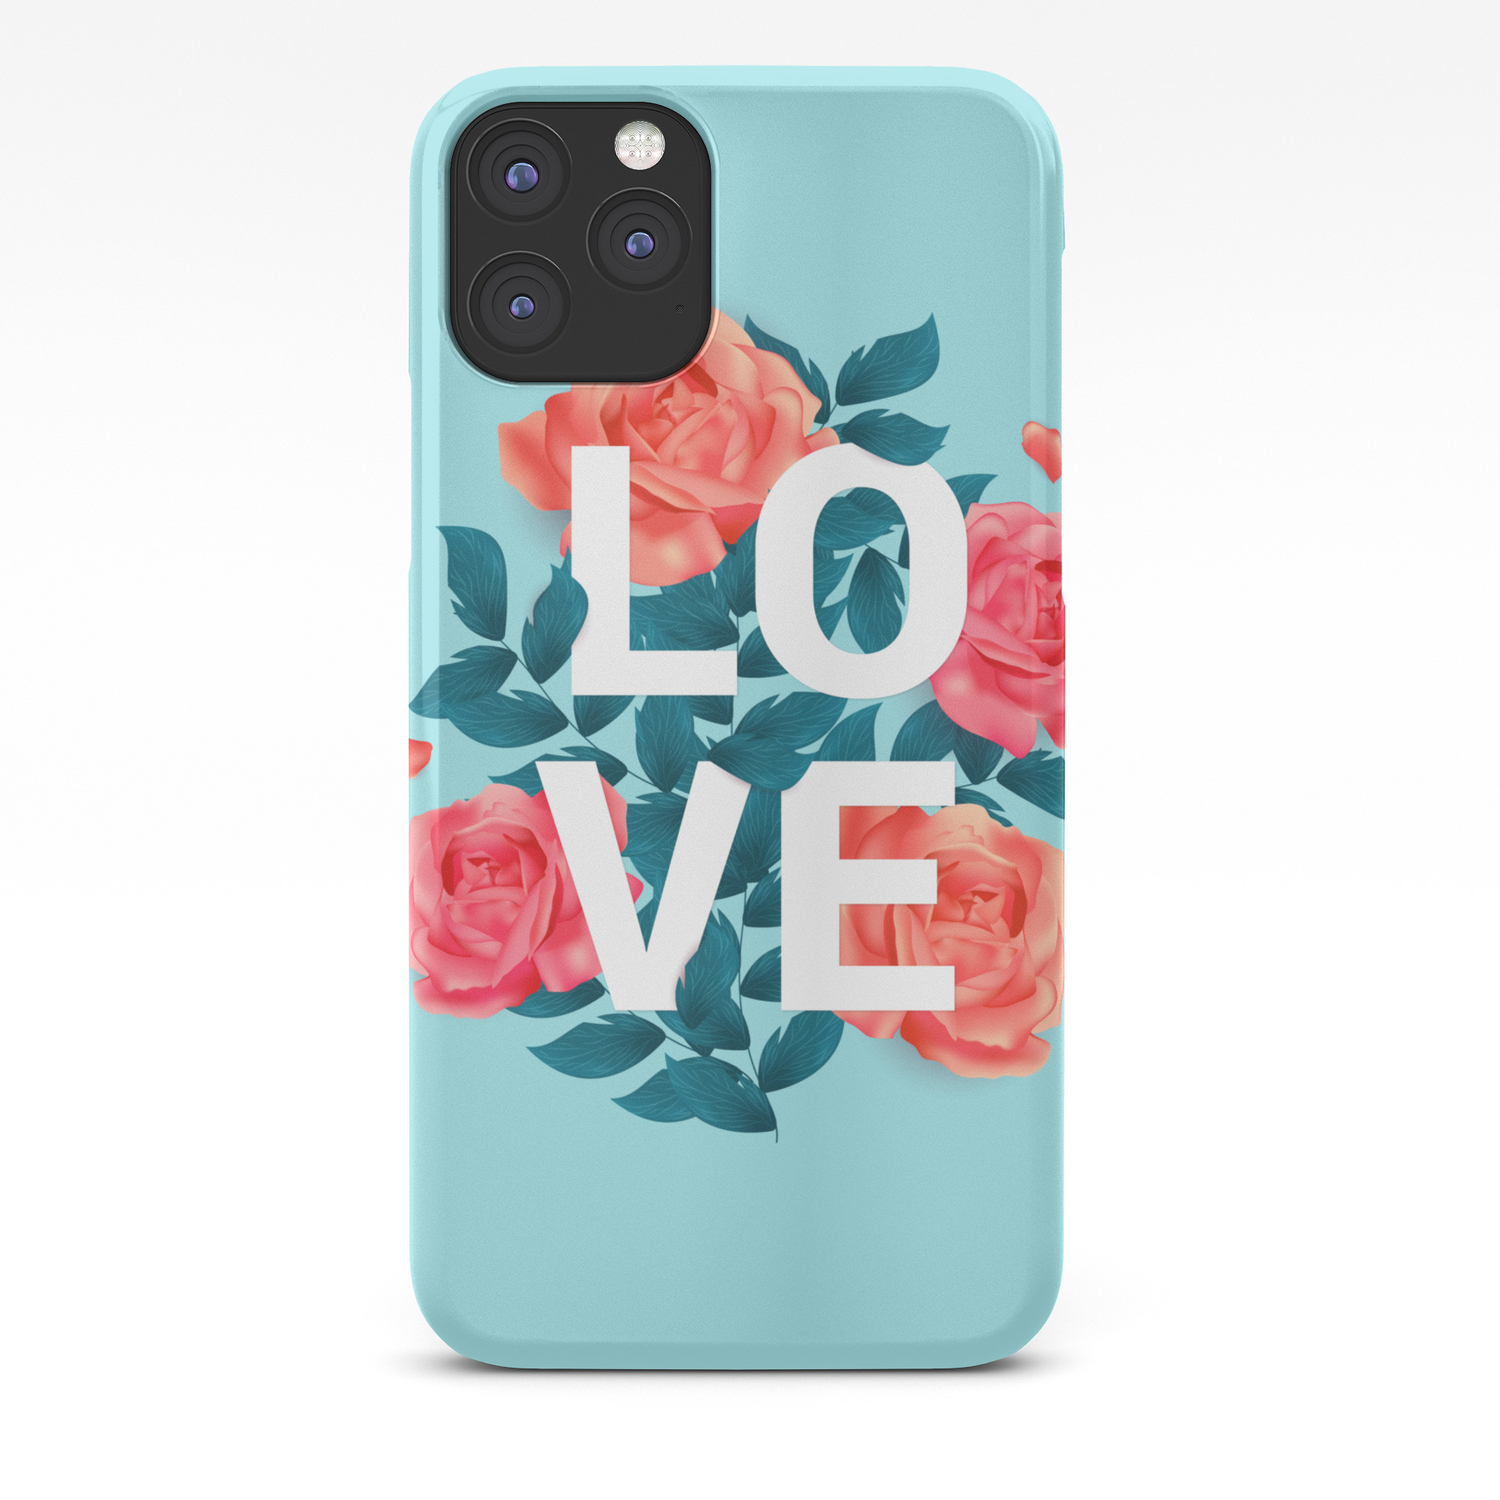 Love Typography With Floral Background Iphone Case By Hommie